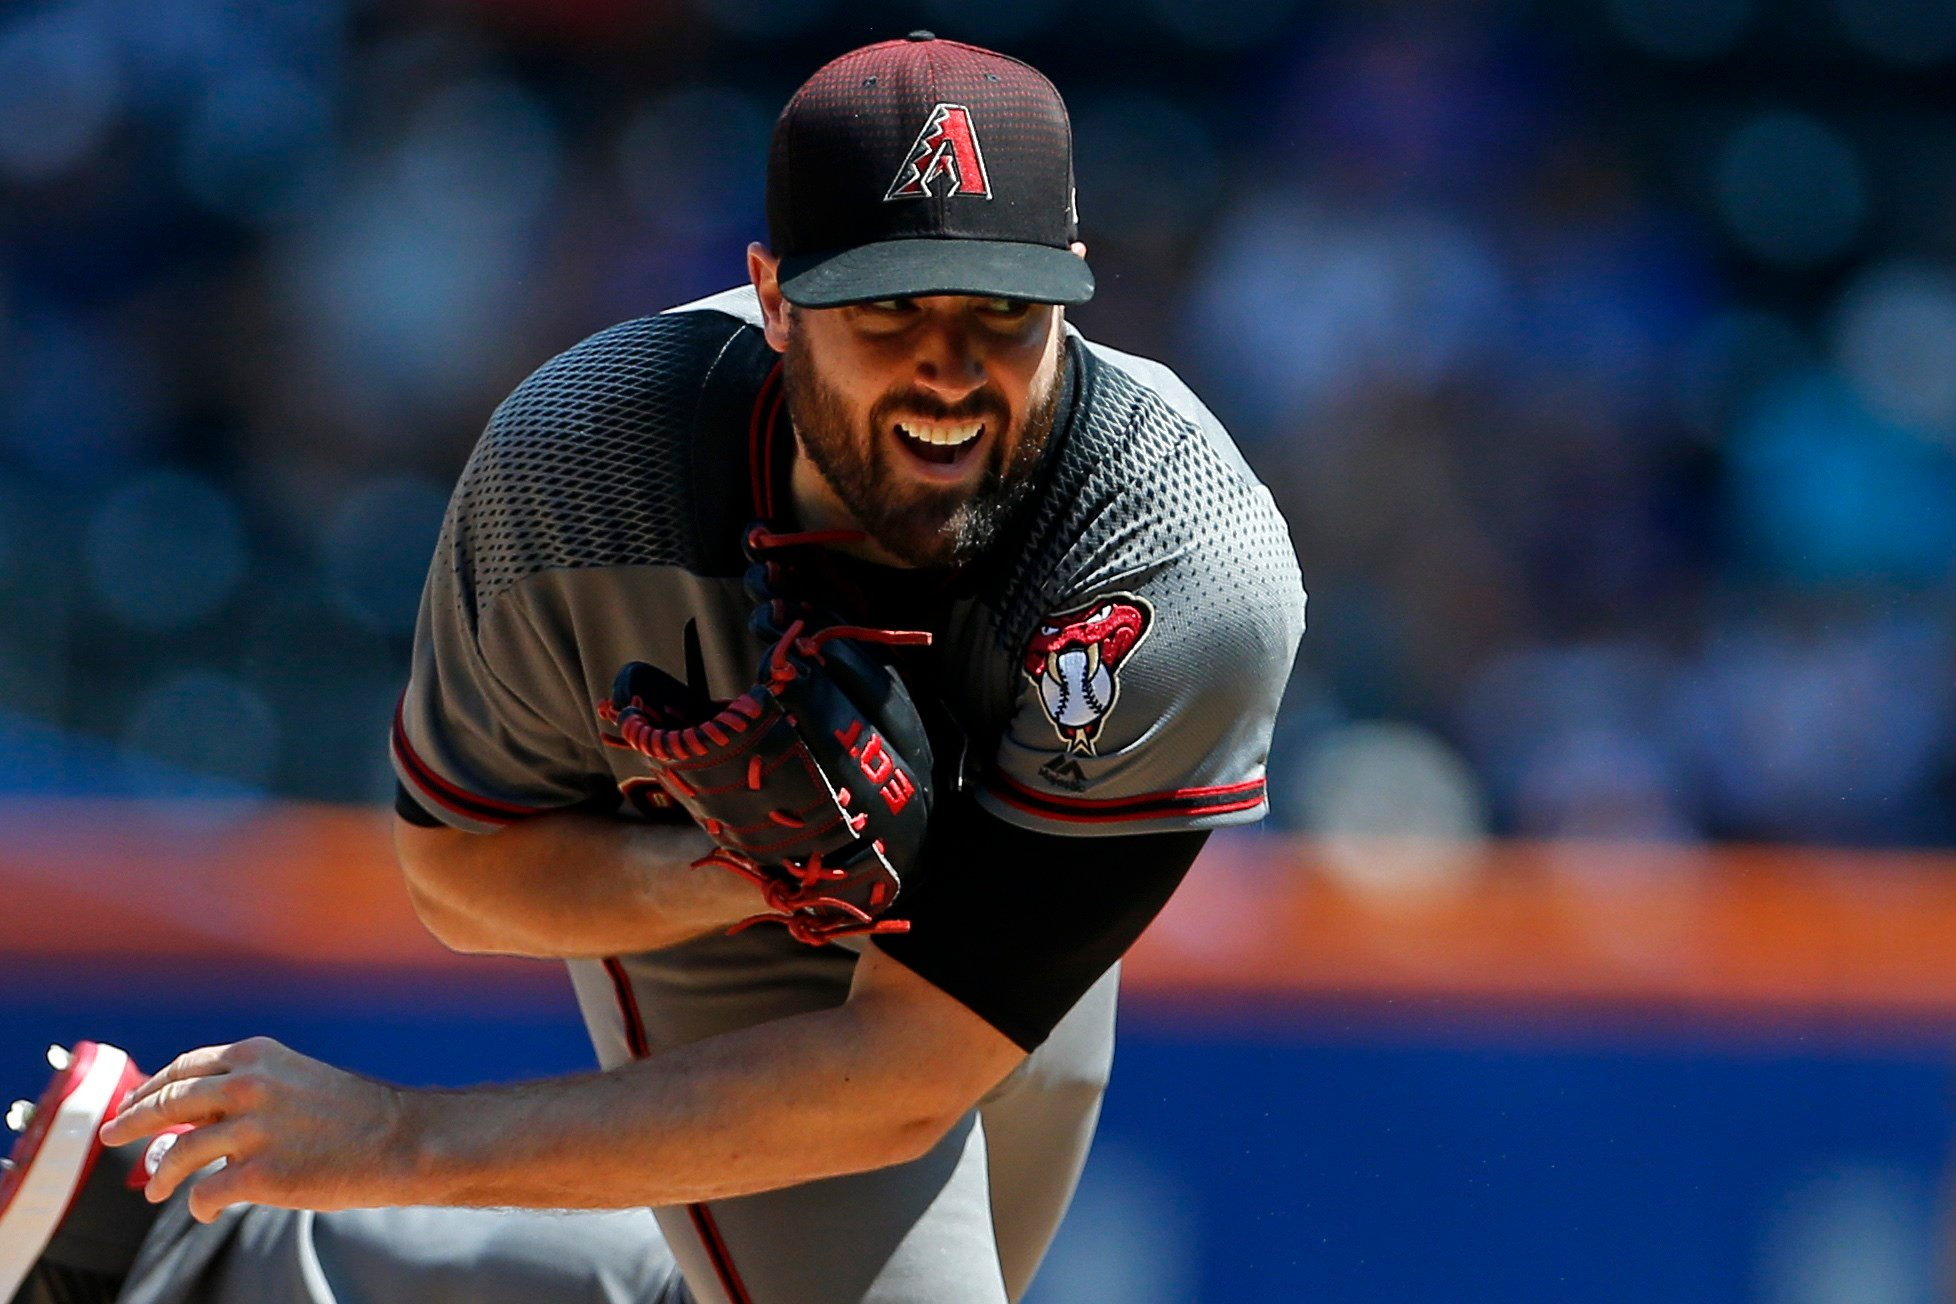 Arizona Diamondbacks pitcher Robbie Ray delivers a pitch during the first inning of a baseball game against the New York Mets on Thursday, Aug. 24, 2017, in New York. (Source: AP Photo/Adam Hunger)